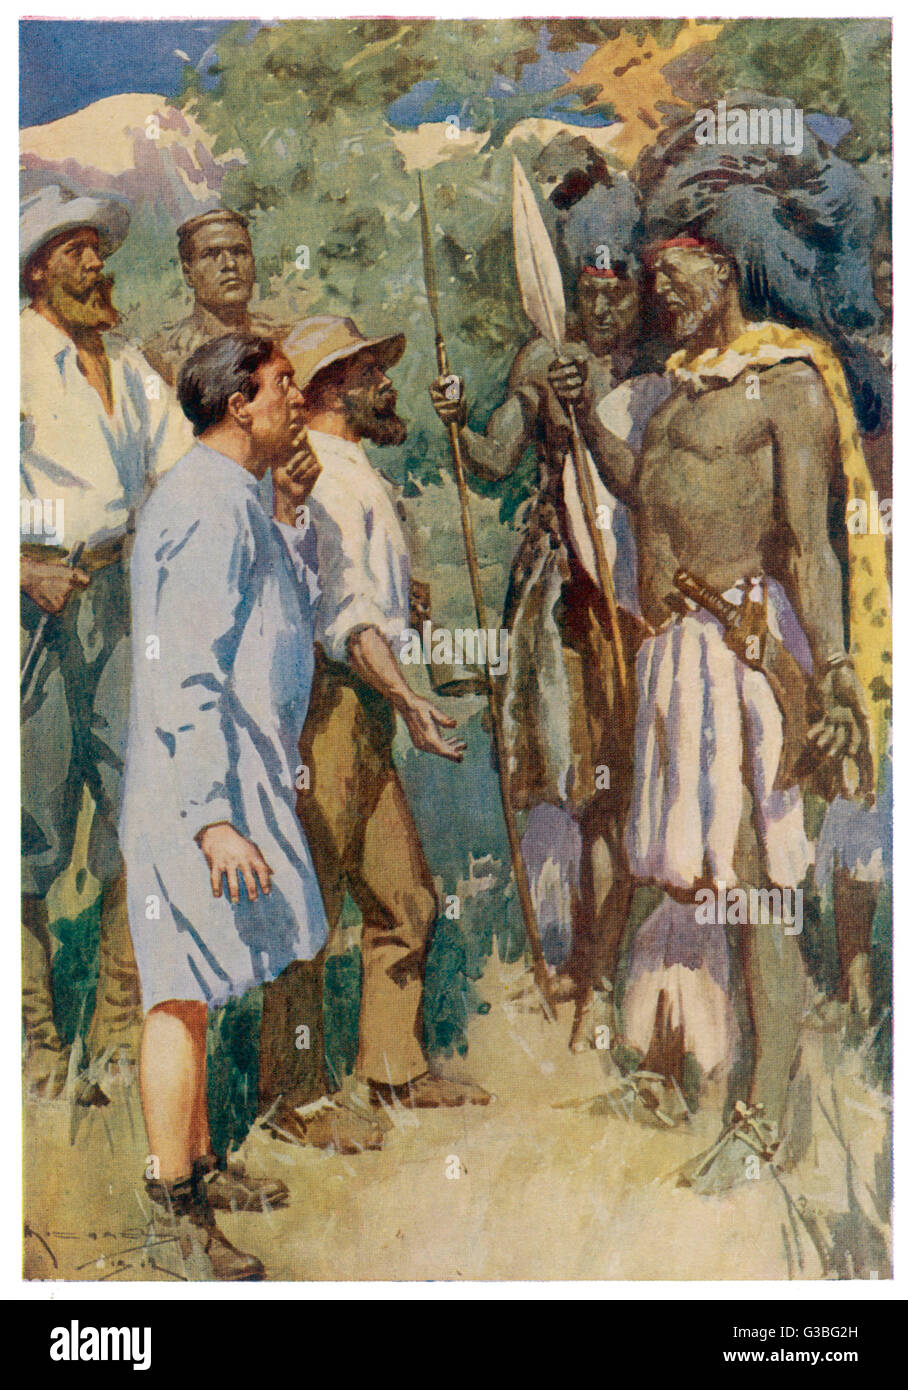 The party have to pretend to  be gods to avoid being  executed by the Kukuana  people.       Date: First published: - Stock Image